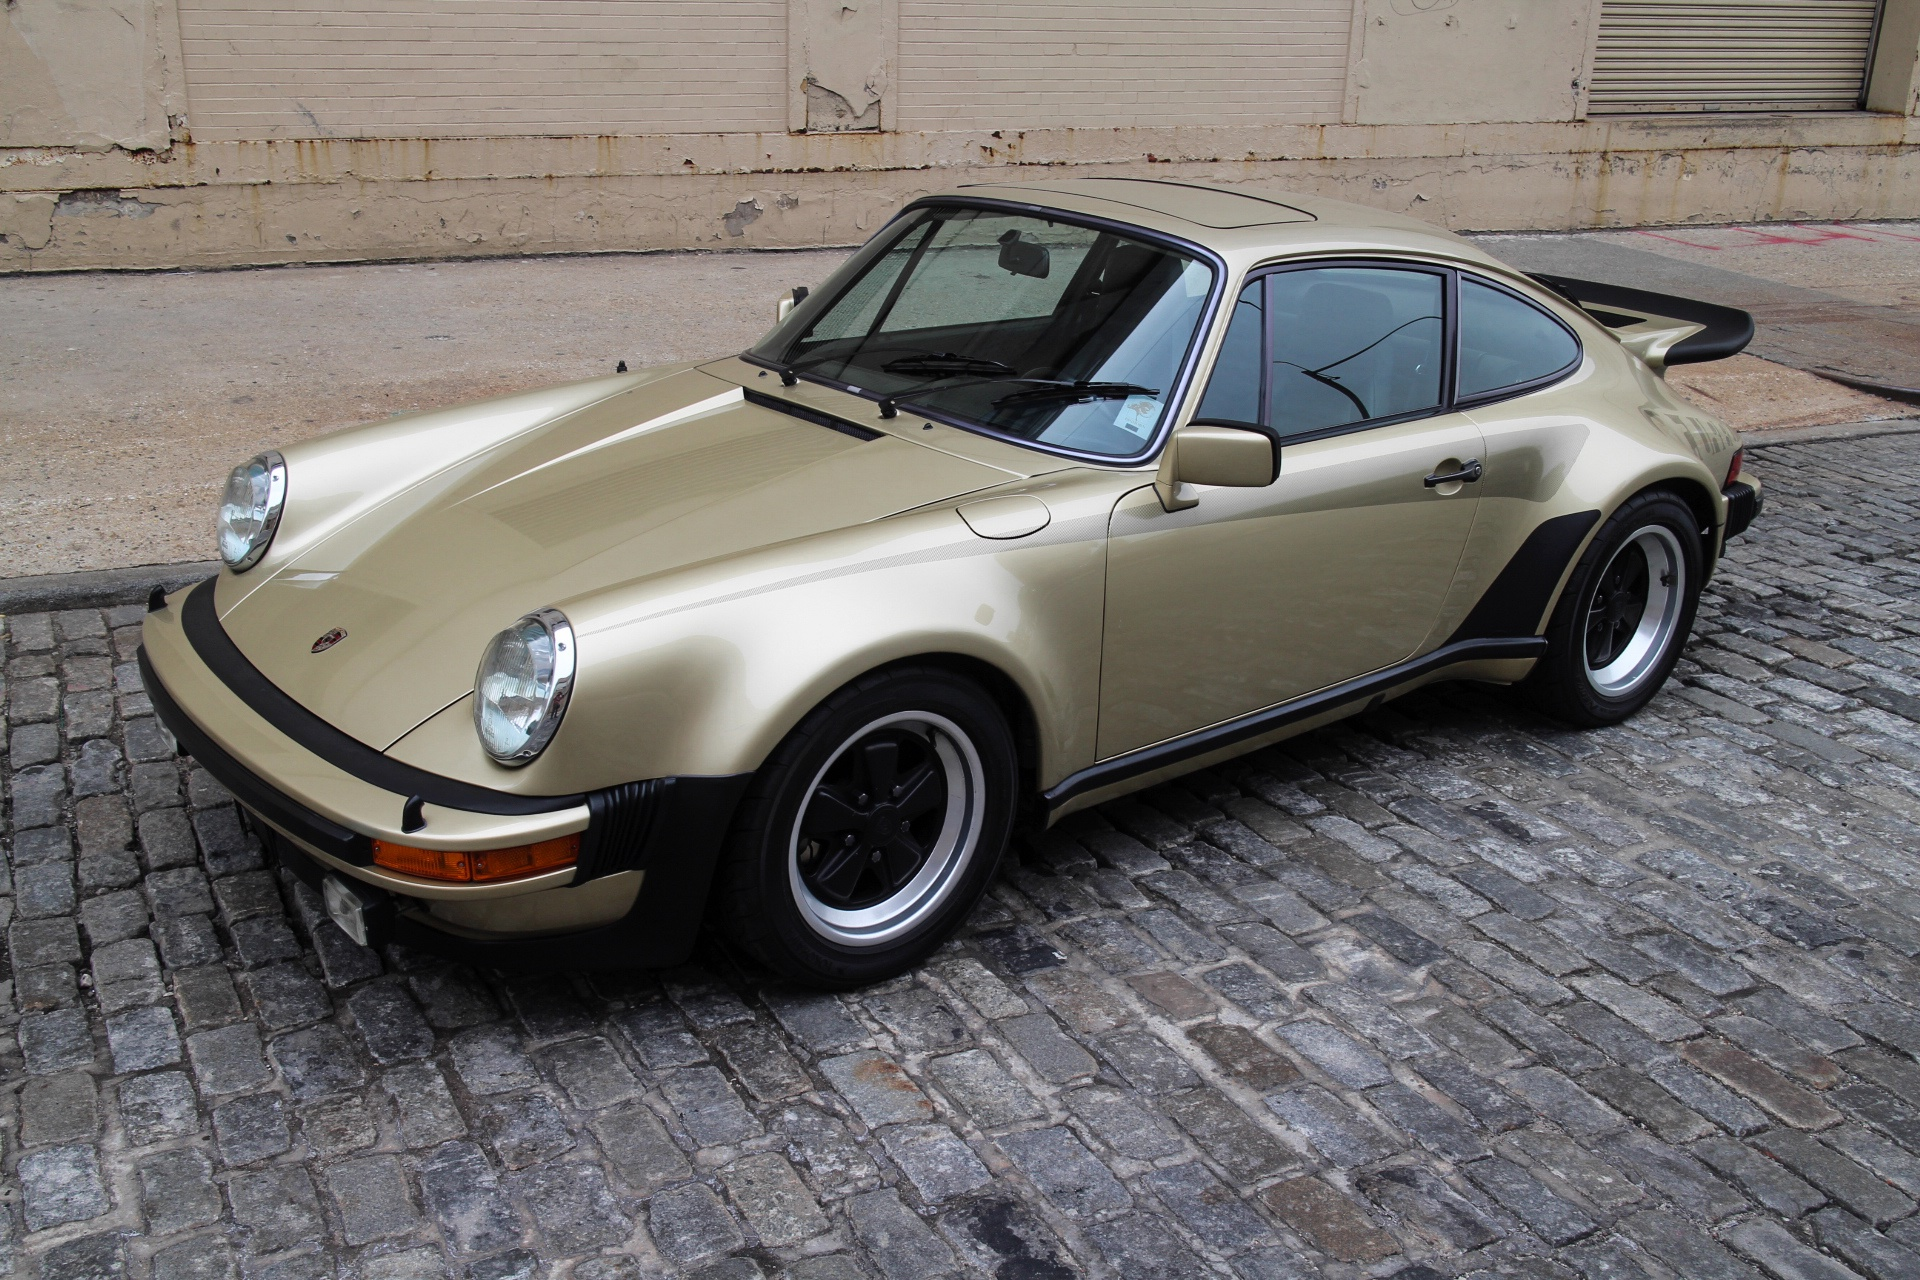 1977 Porsche 930 Turbo Carrera Stock 930781 For Sale